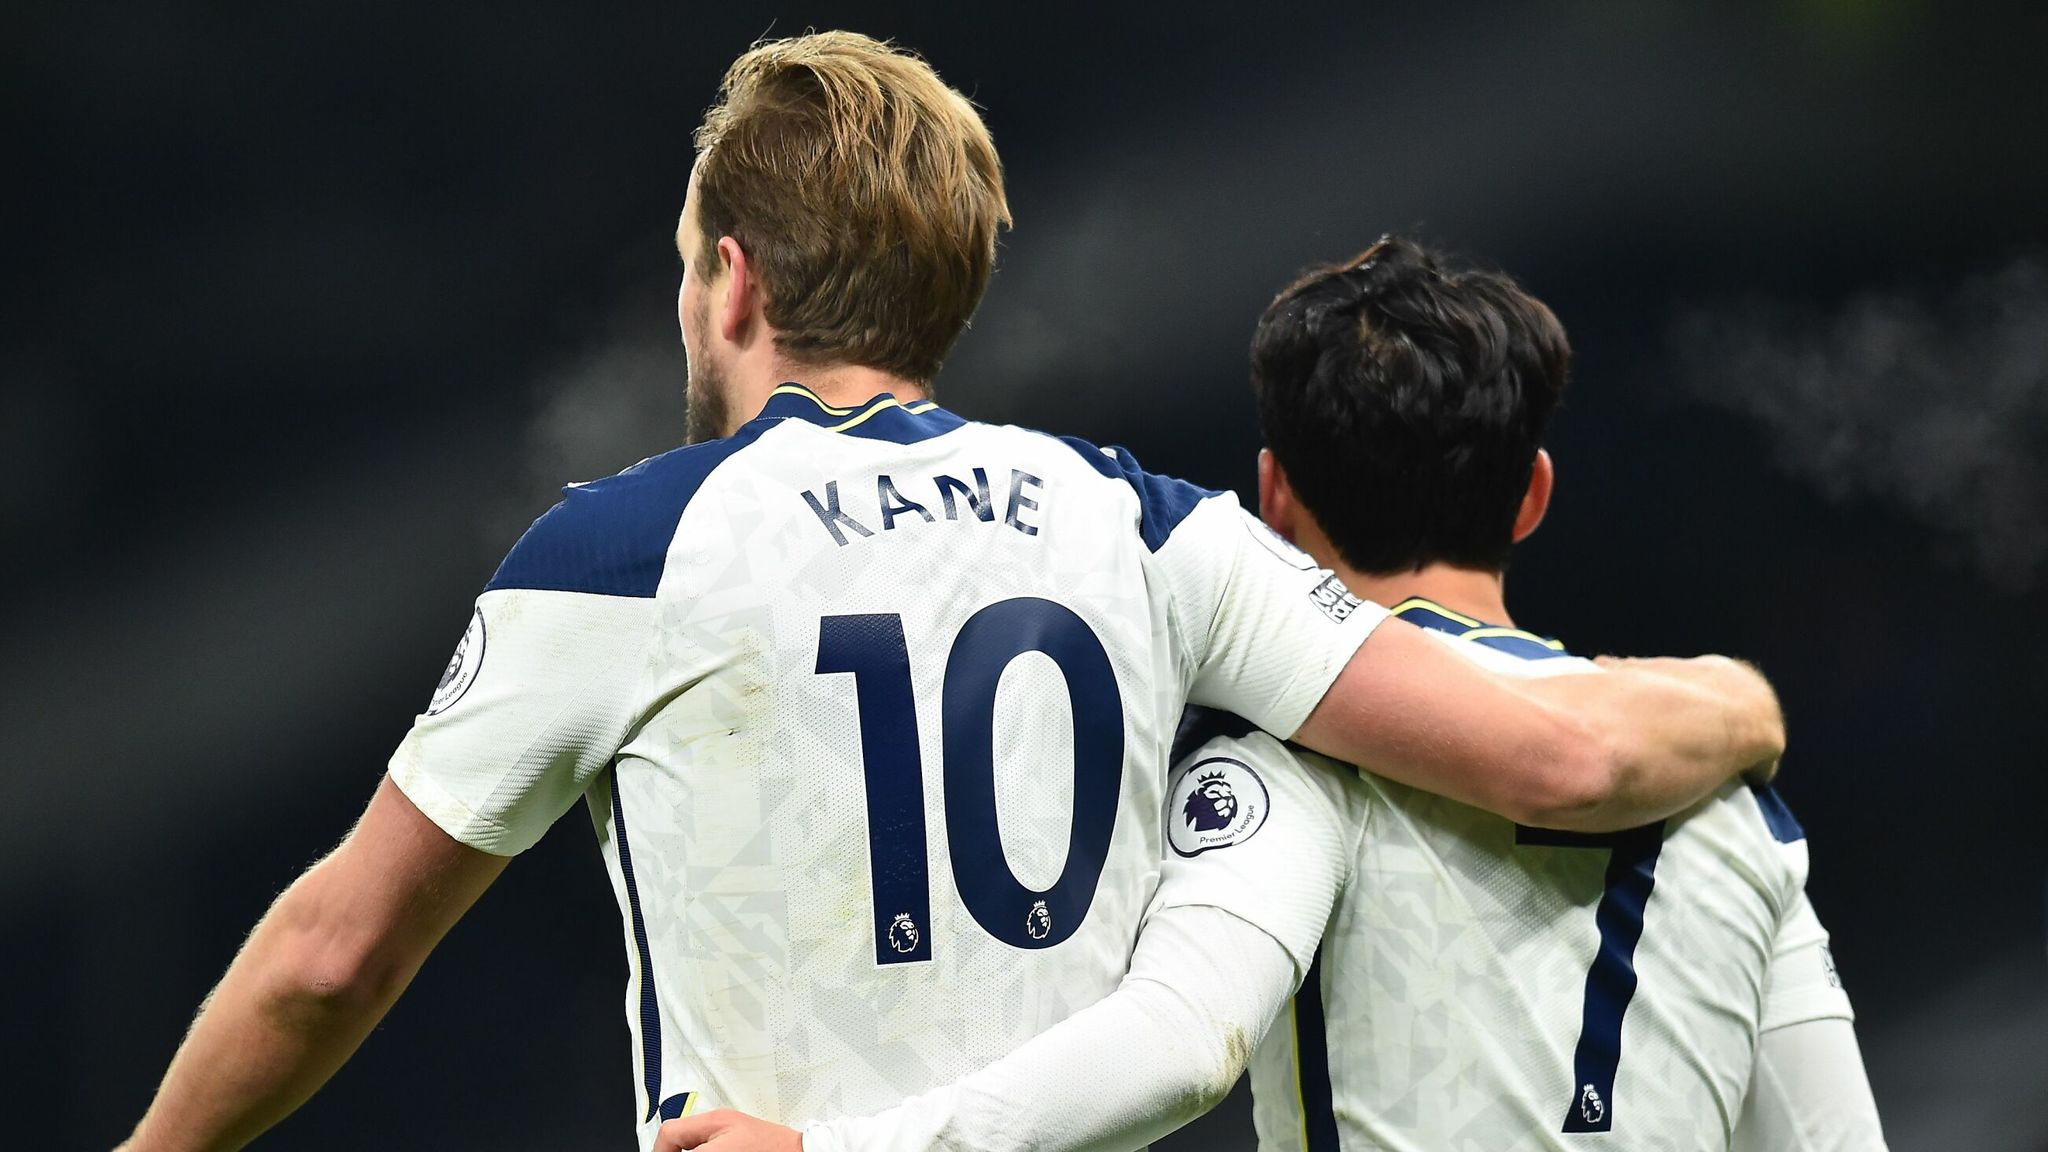 Harry Kane And Heung Min Son At Tottenham The Stats Behind The Story Of The Premier Leagues Best Double Act Football News Sky Sports